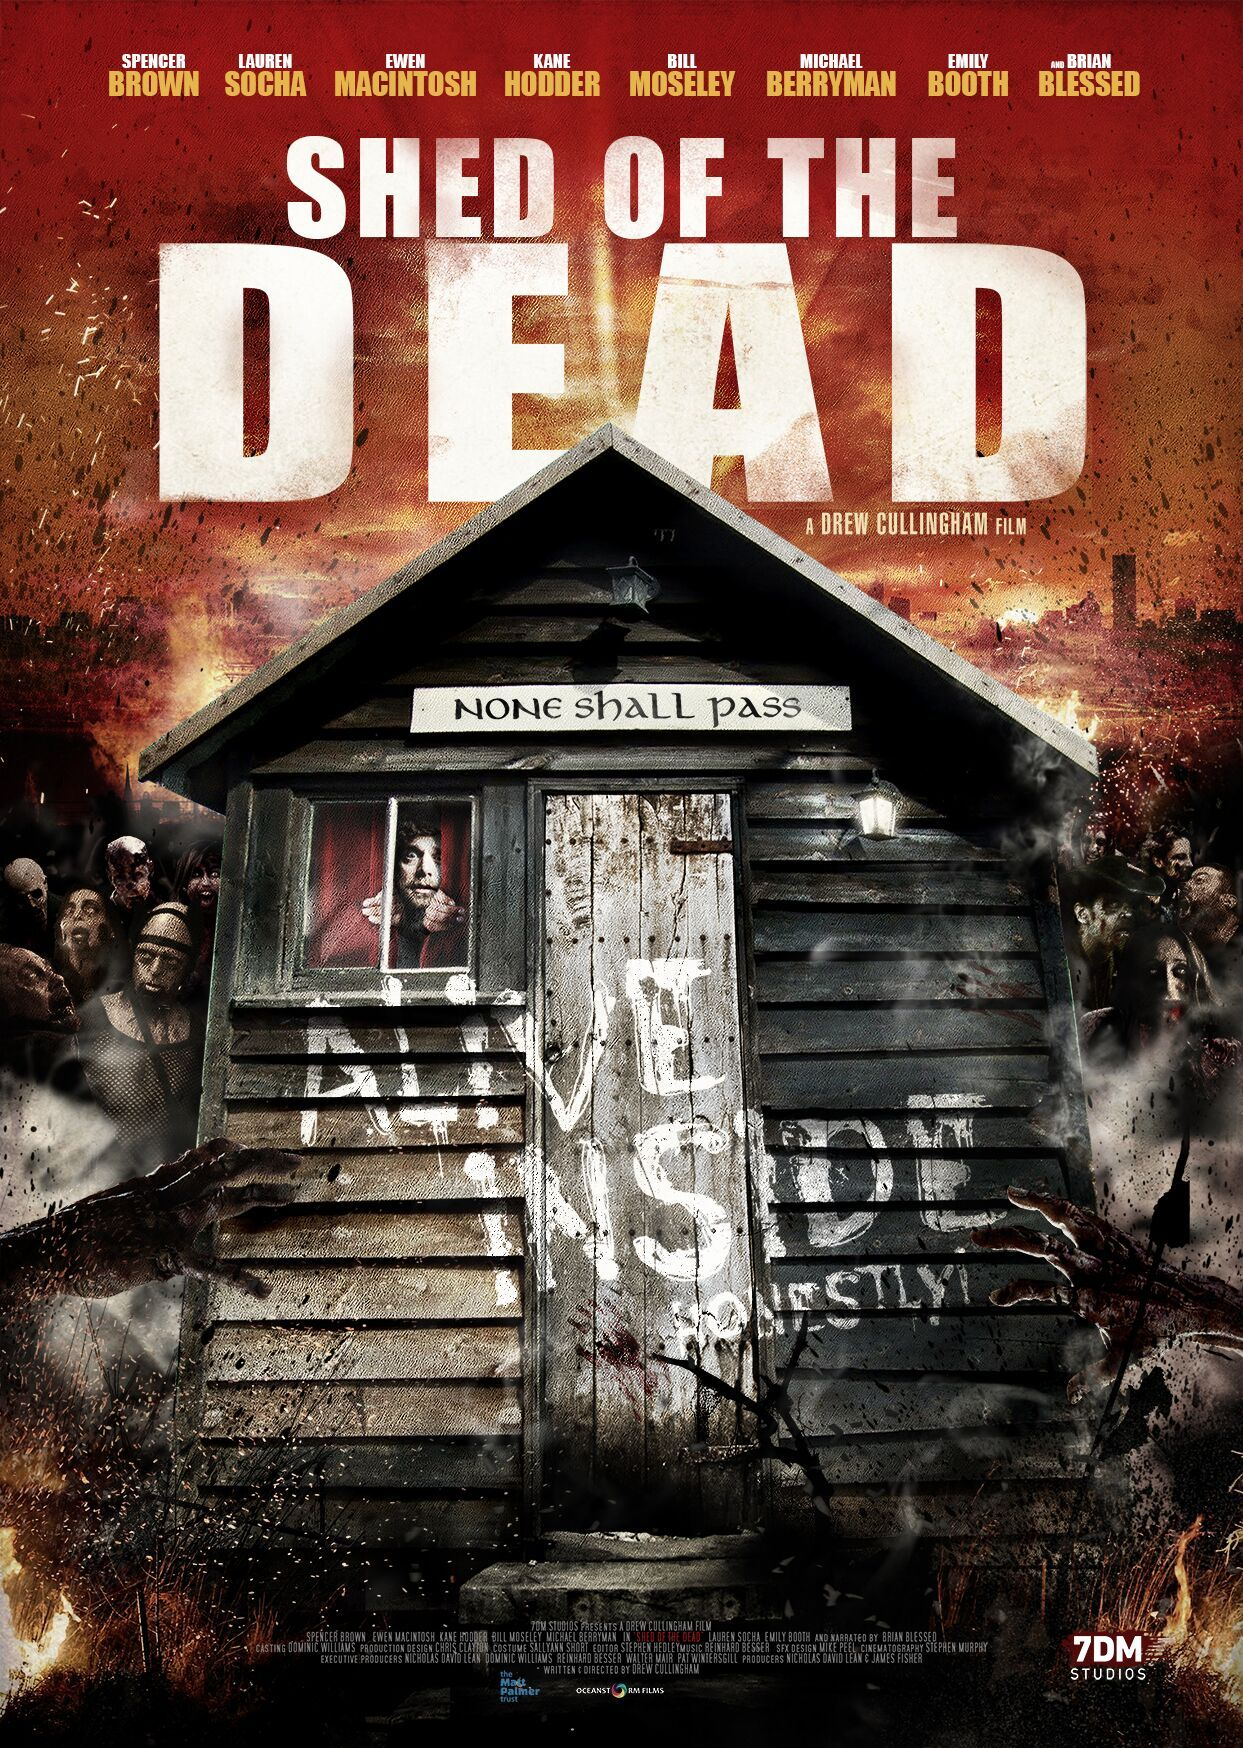 Shed of the Dead movie trailer https//teasertrailer